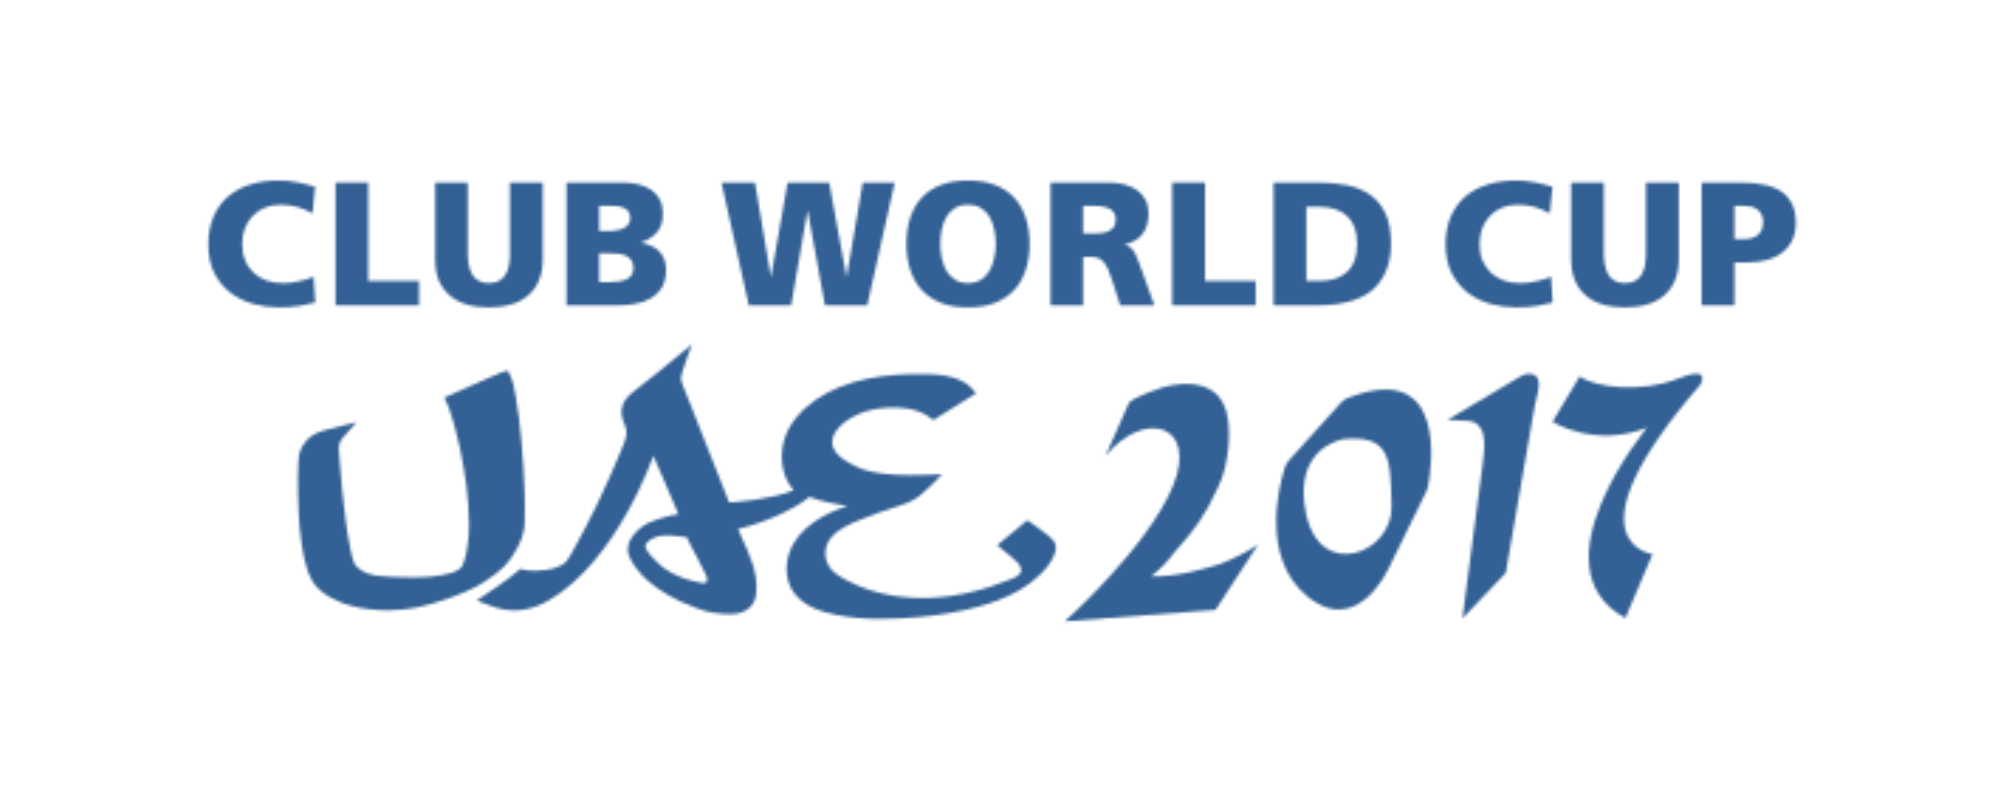 Fifa club world cup logo png. File text svg wikimedia